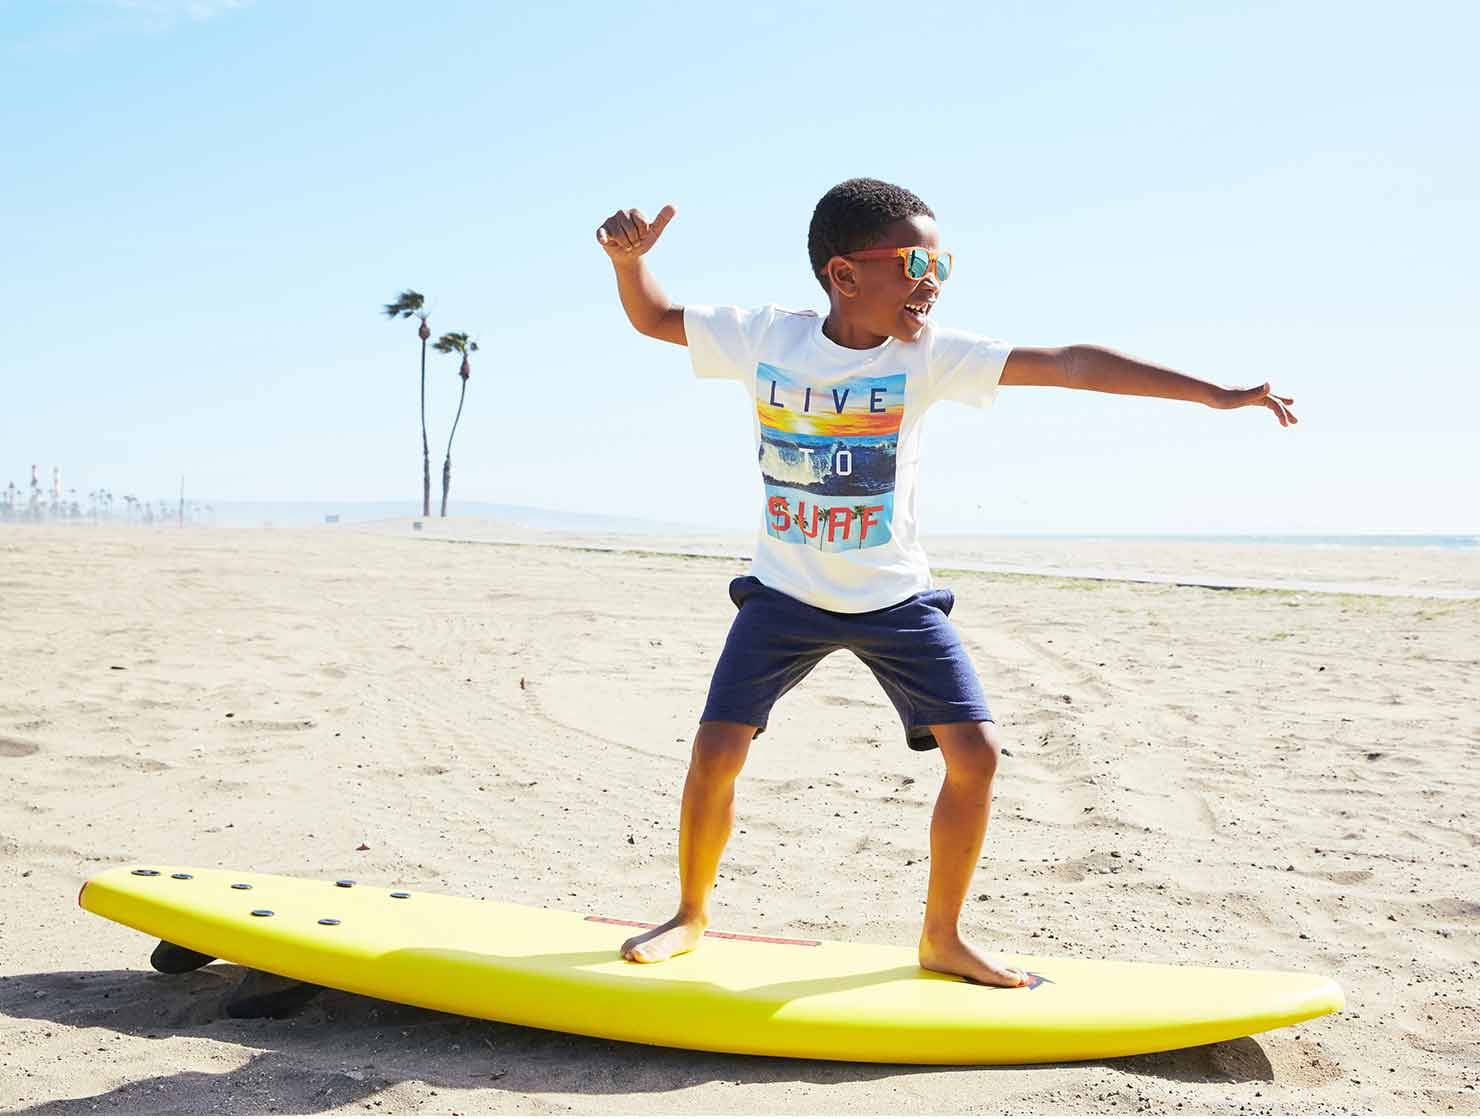 Photo of a boy wearing cool childrens clothes on surfboard